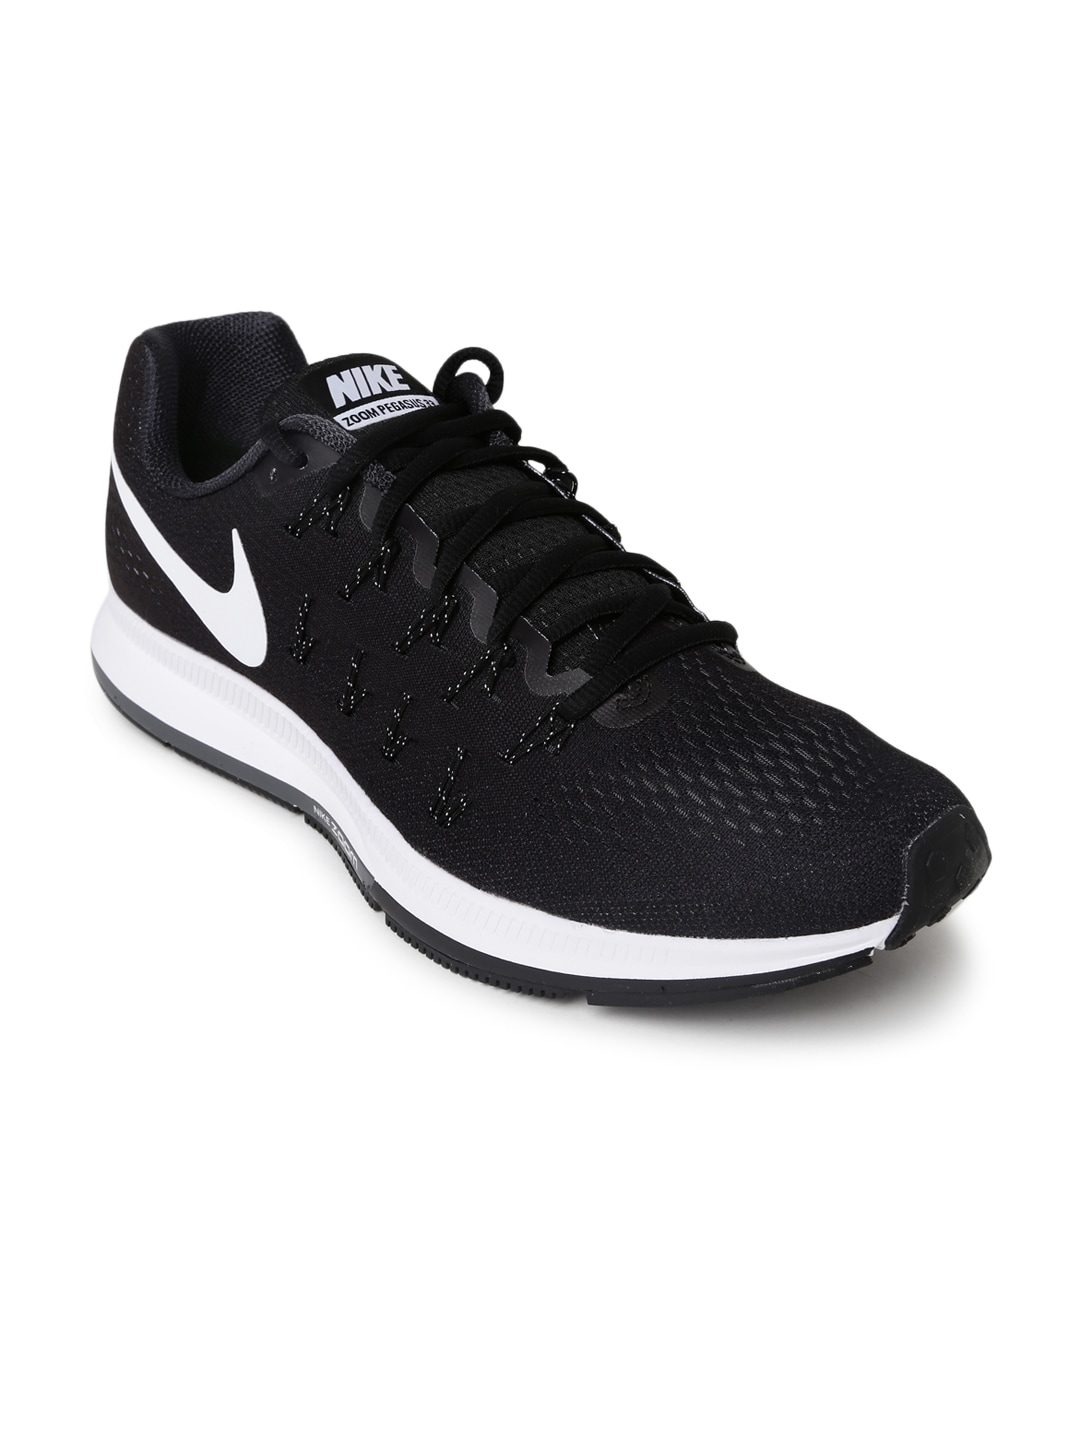 bfaeedc1f180 Nike 831352-001 Men Black Air Zoom Pegasus 33 Running Shoes- Price in India